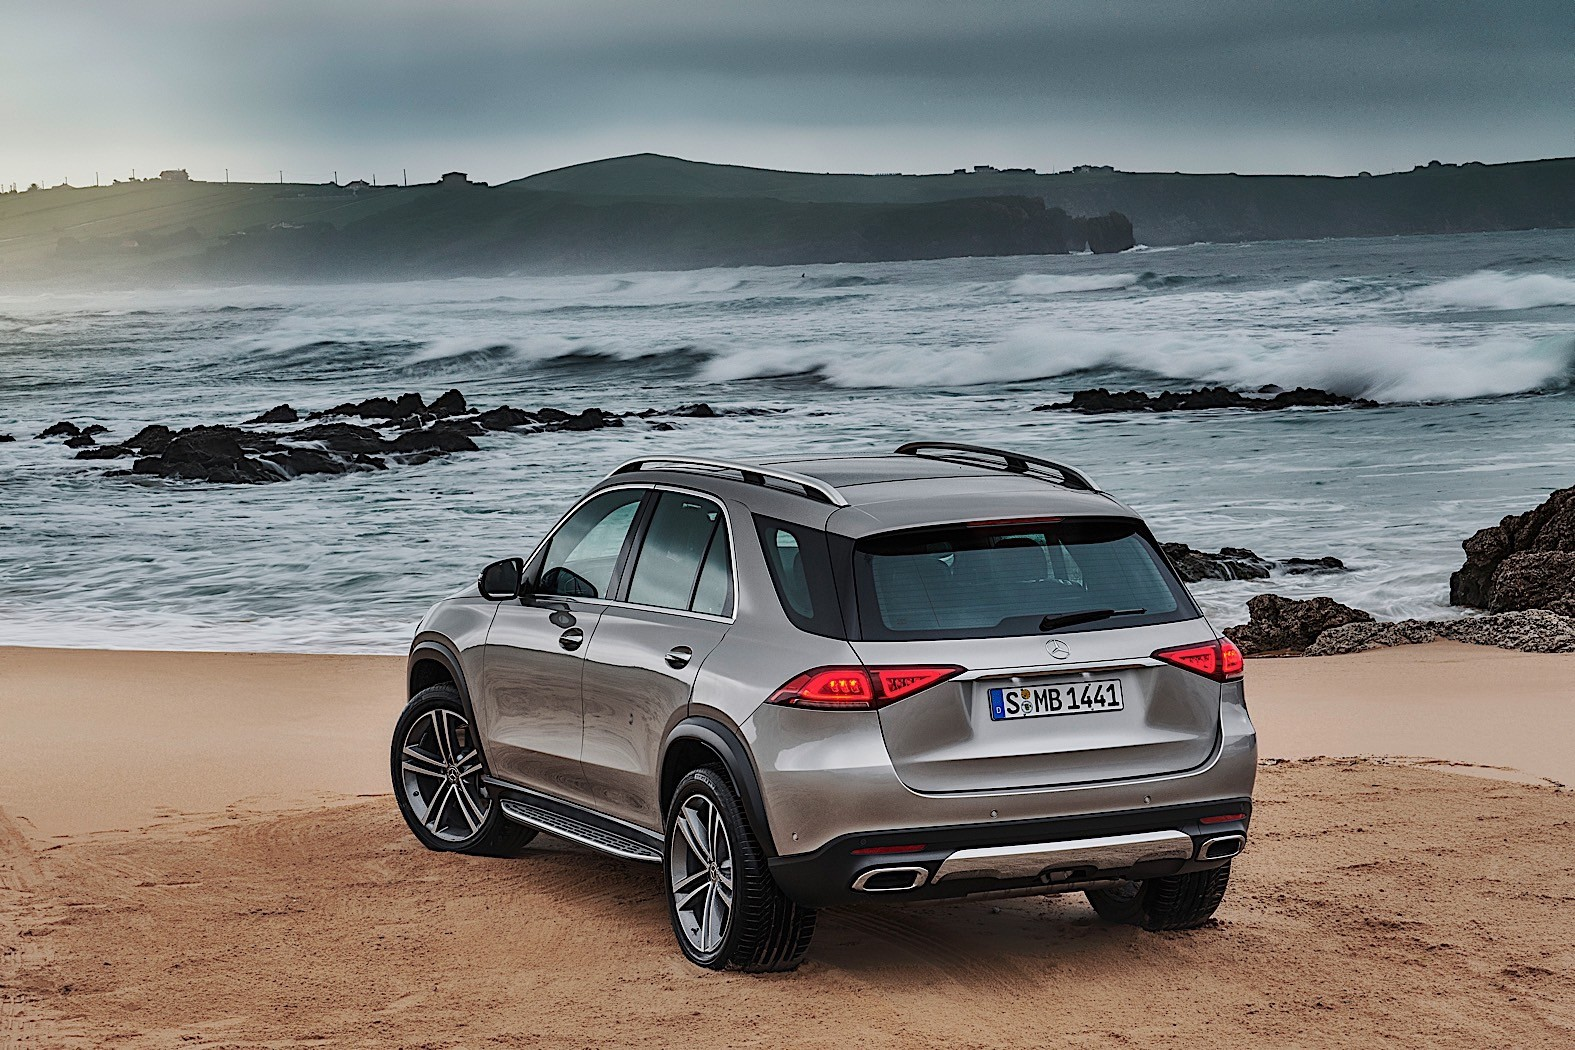 2019 Gle Suv >> 2019 Mercedes-Benz GLE Breaks Cover, Packed with Technology - autoevolution